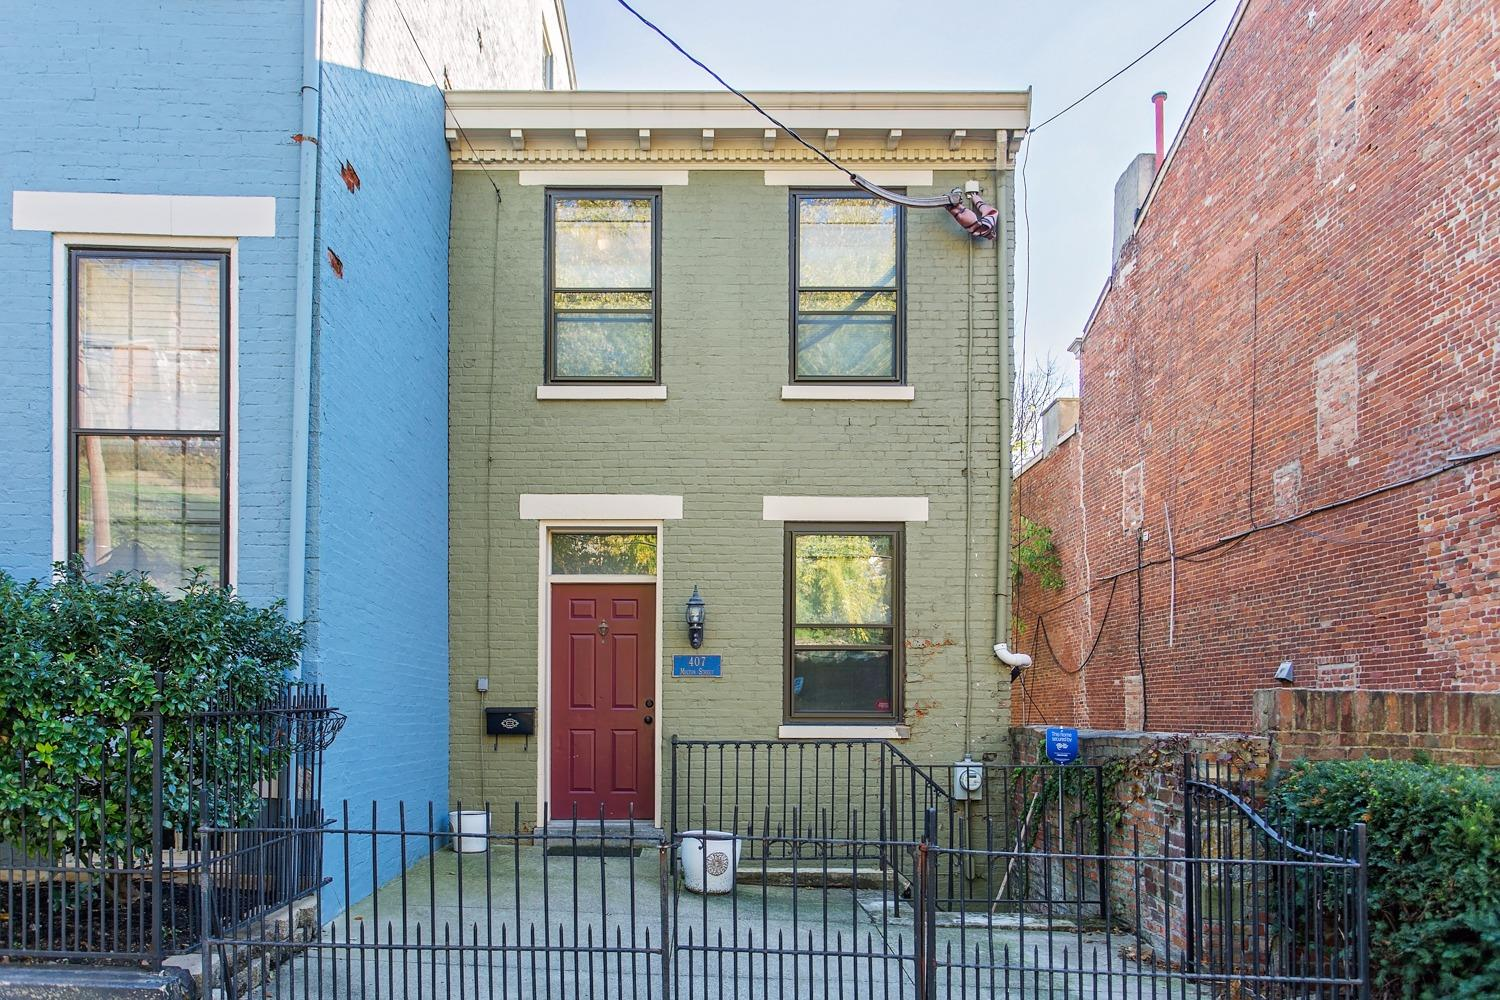 Great single family home in historic Mt. Auburn w/ no HOA fees! Enjoy city views from your two decks & private backyard oasis. W/ lots of new development in the area, here's your chance to own a historic gem in Prospect Hill. This property is just a few minute walk to all of the great shops, parks, restaurants & nightlife that Downtown & OTR offer.